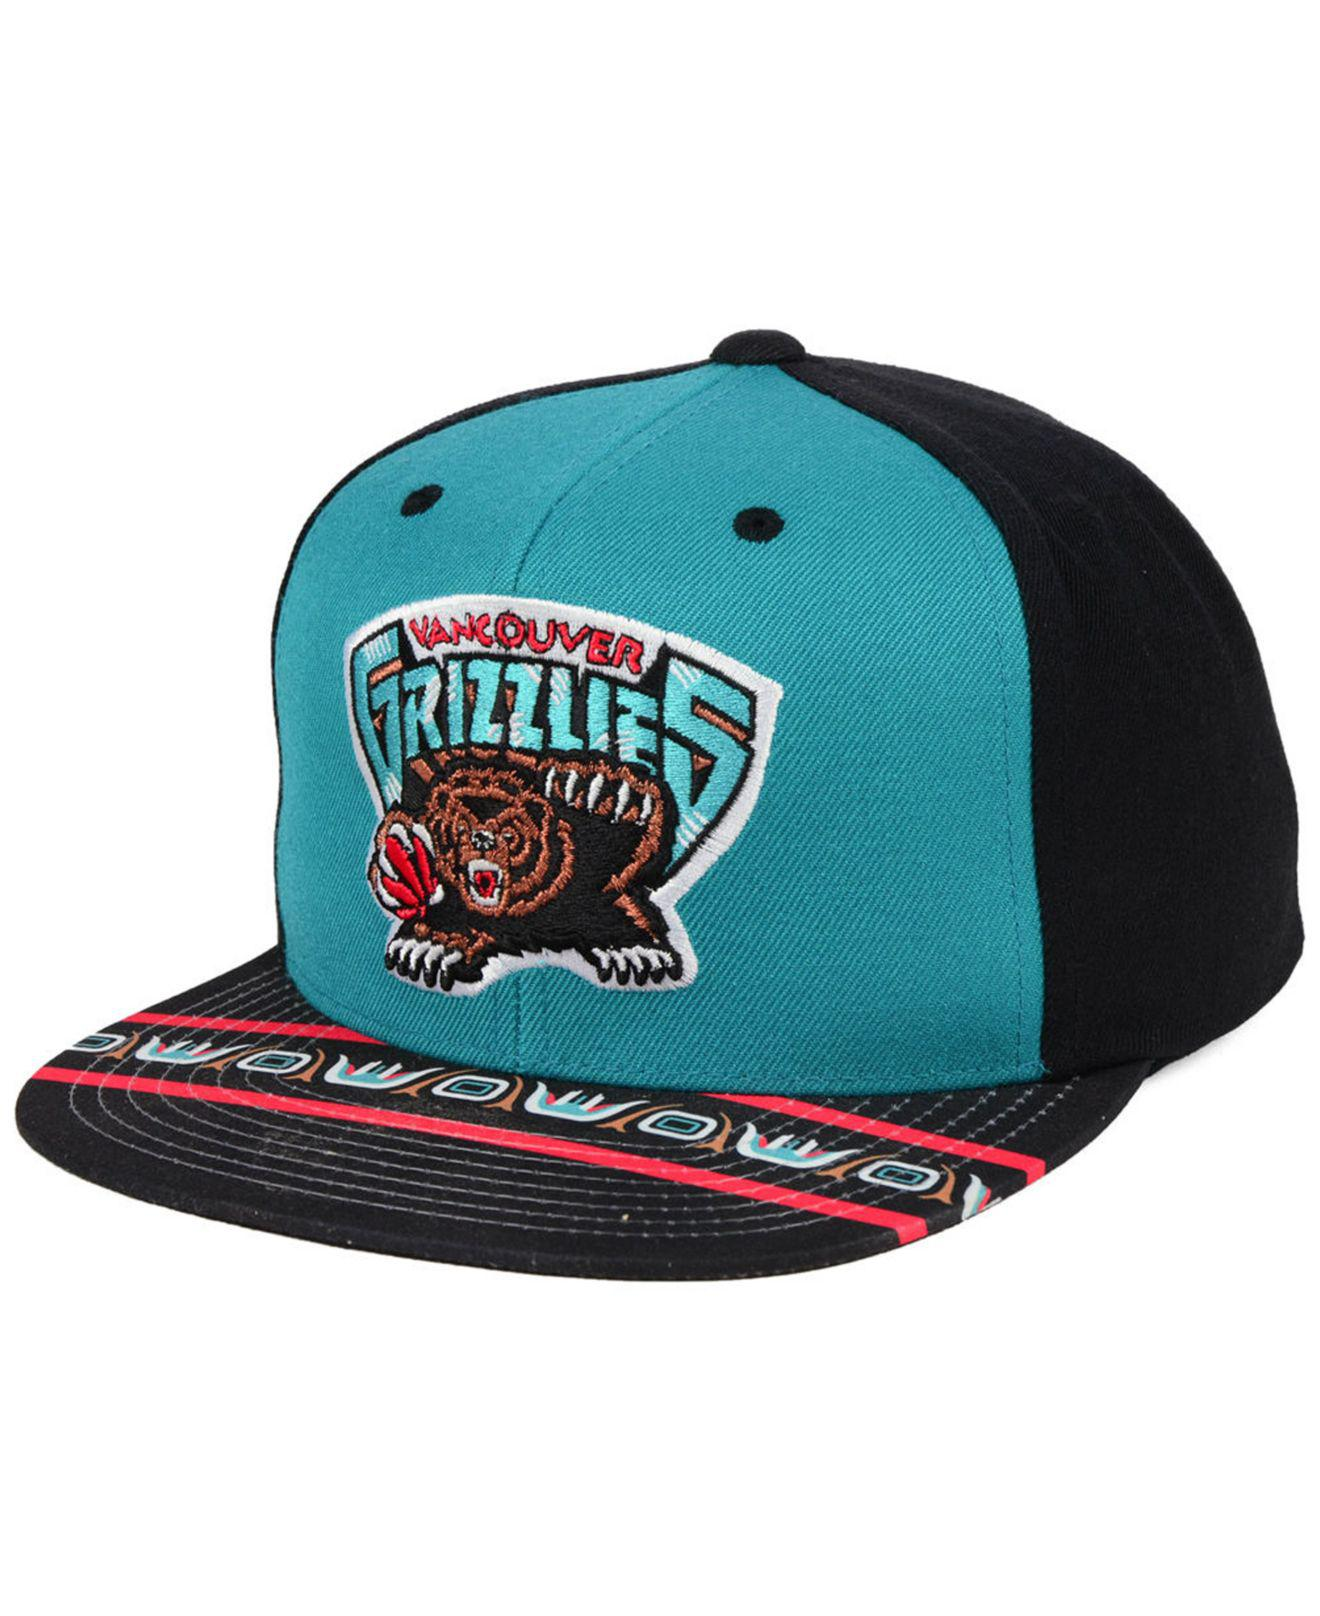 new concept 02895 e9c14 Mitchell   Ness Vancouver Grizzlies Winning Team Snapback Cap for ...